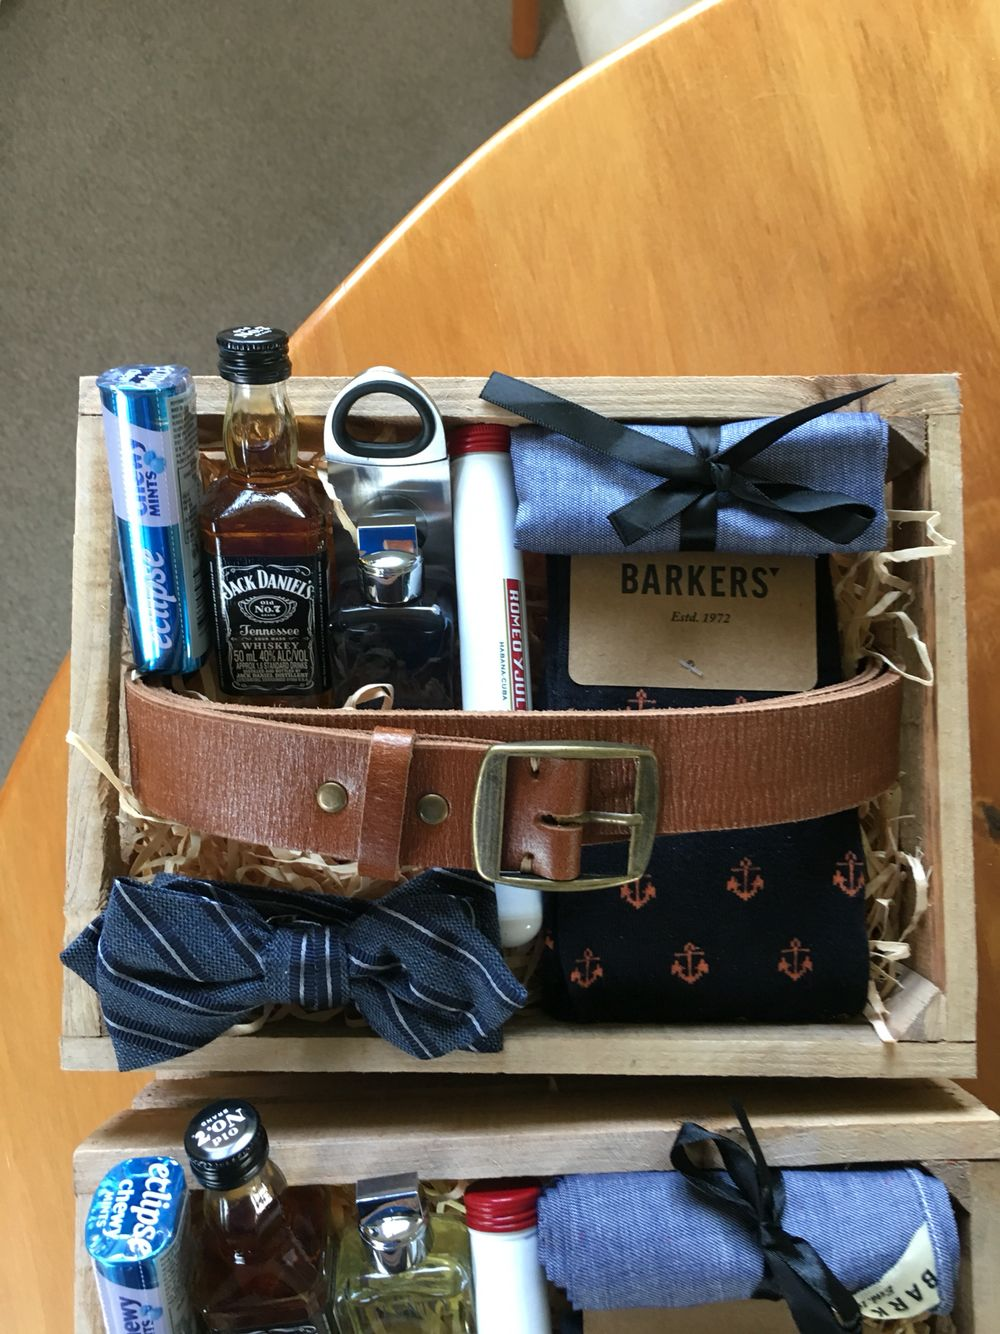 Groomsmen Wedding Gift: Wonderful 30 Manly Groomsmen Gifts Ideas For Your Buddies